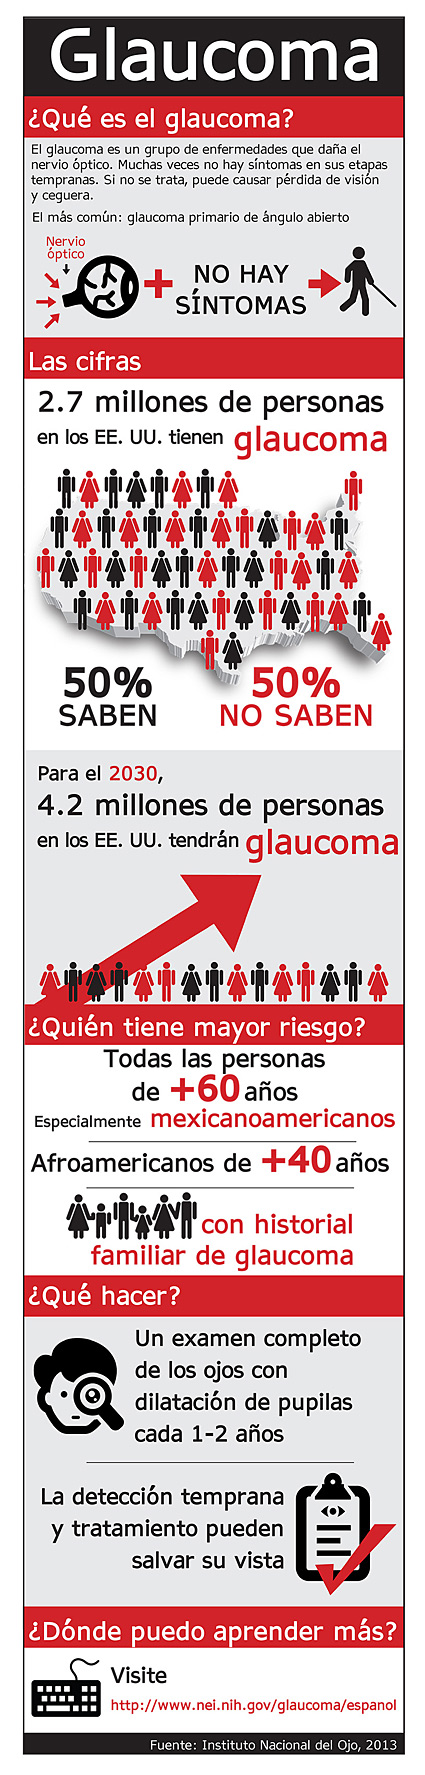 Glaucoma Infographic Spanish Preview